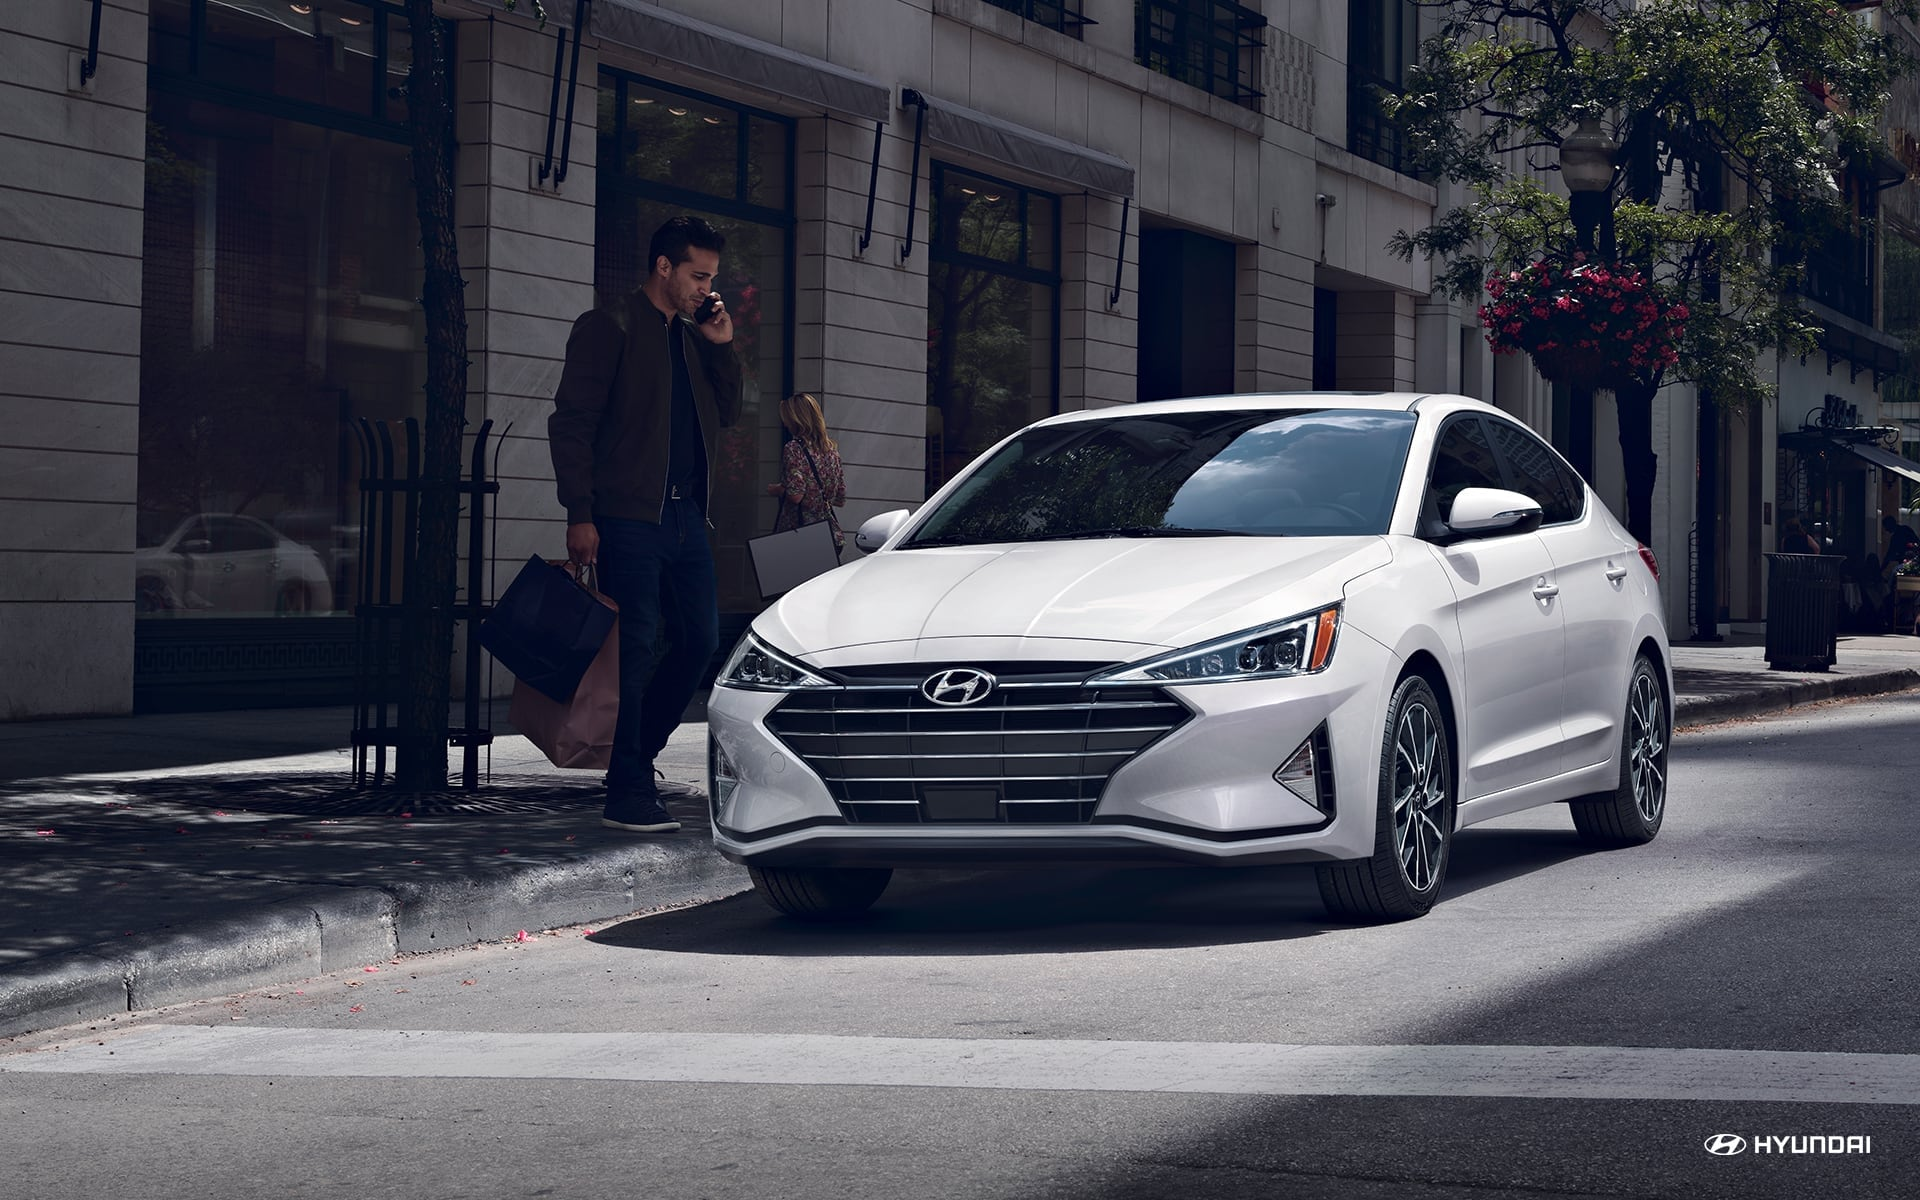 Test drive the 2020 Hyundai Elantra in Matthews NC